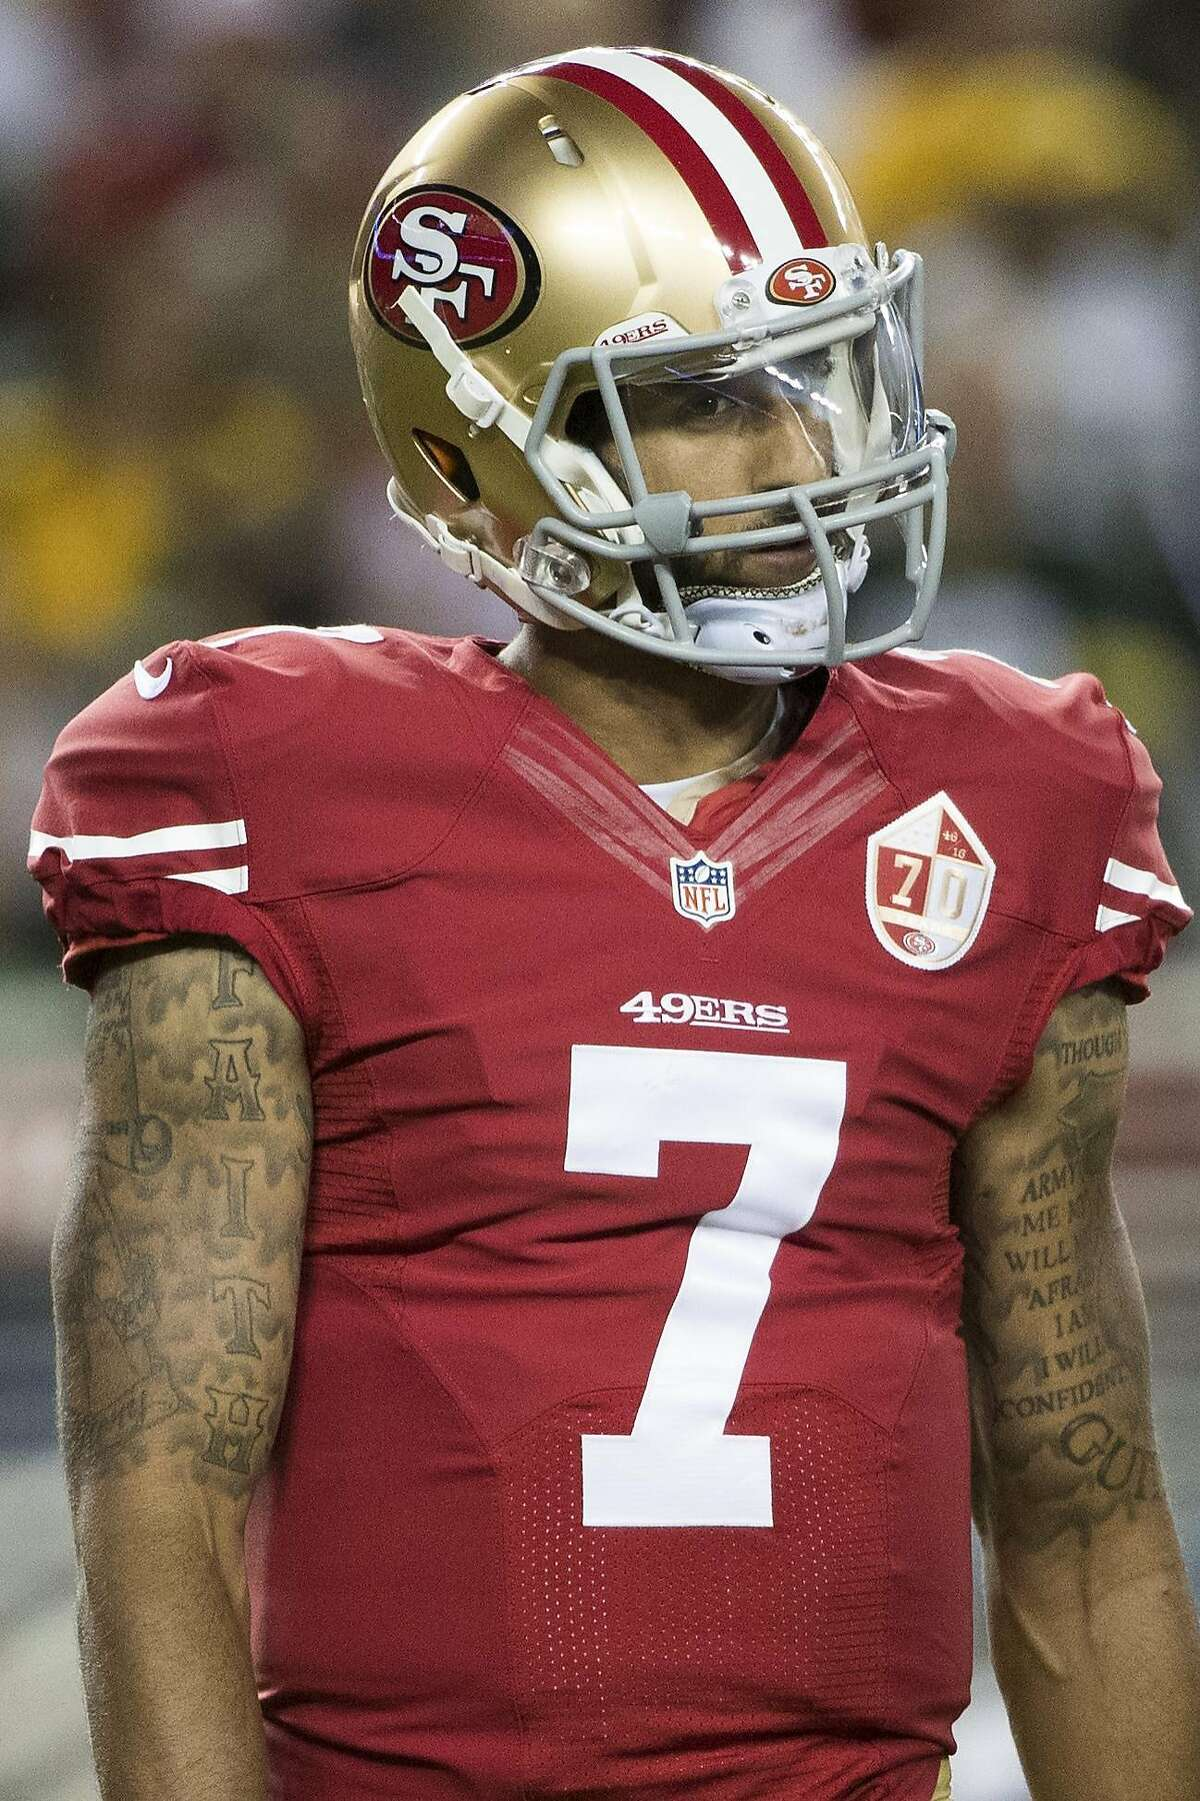 Quarterback Colin Kaepernick (7) of the San Francisco 49ers is on the field after an incomplete pass during the second quarter of his NFL preseason game against the Green Bay Packers at Levi's Stadium in Santa Clara, Calif. on Friday, Aug. 26, 2016.